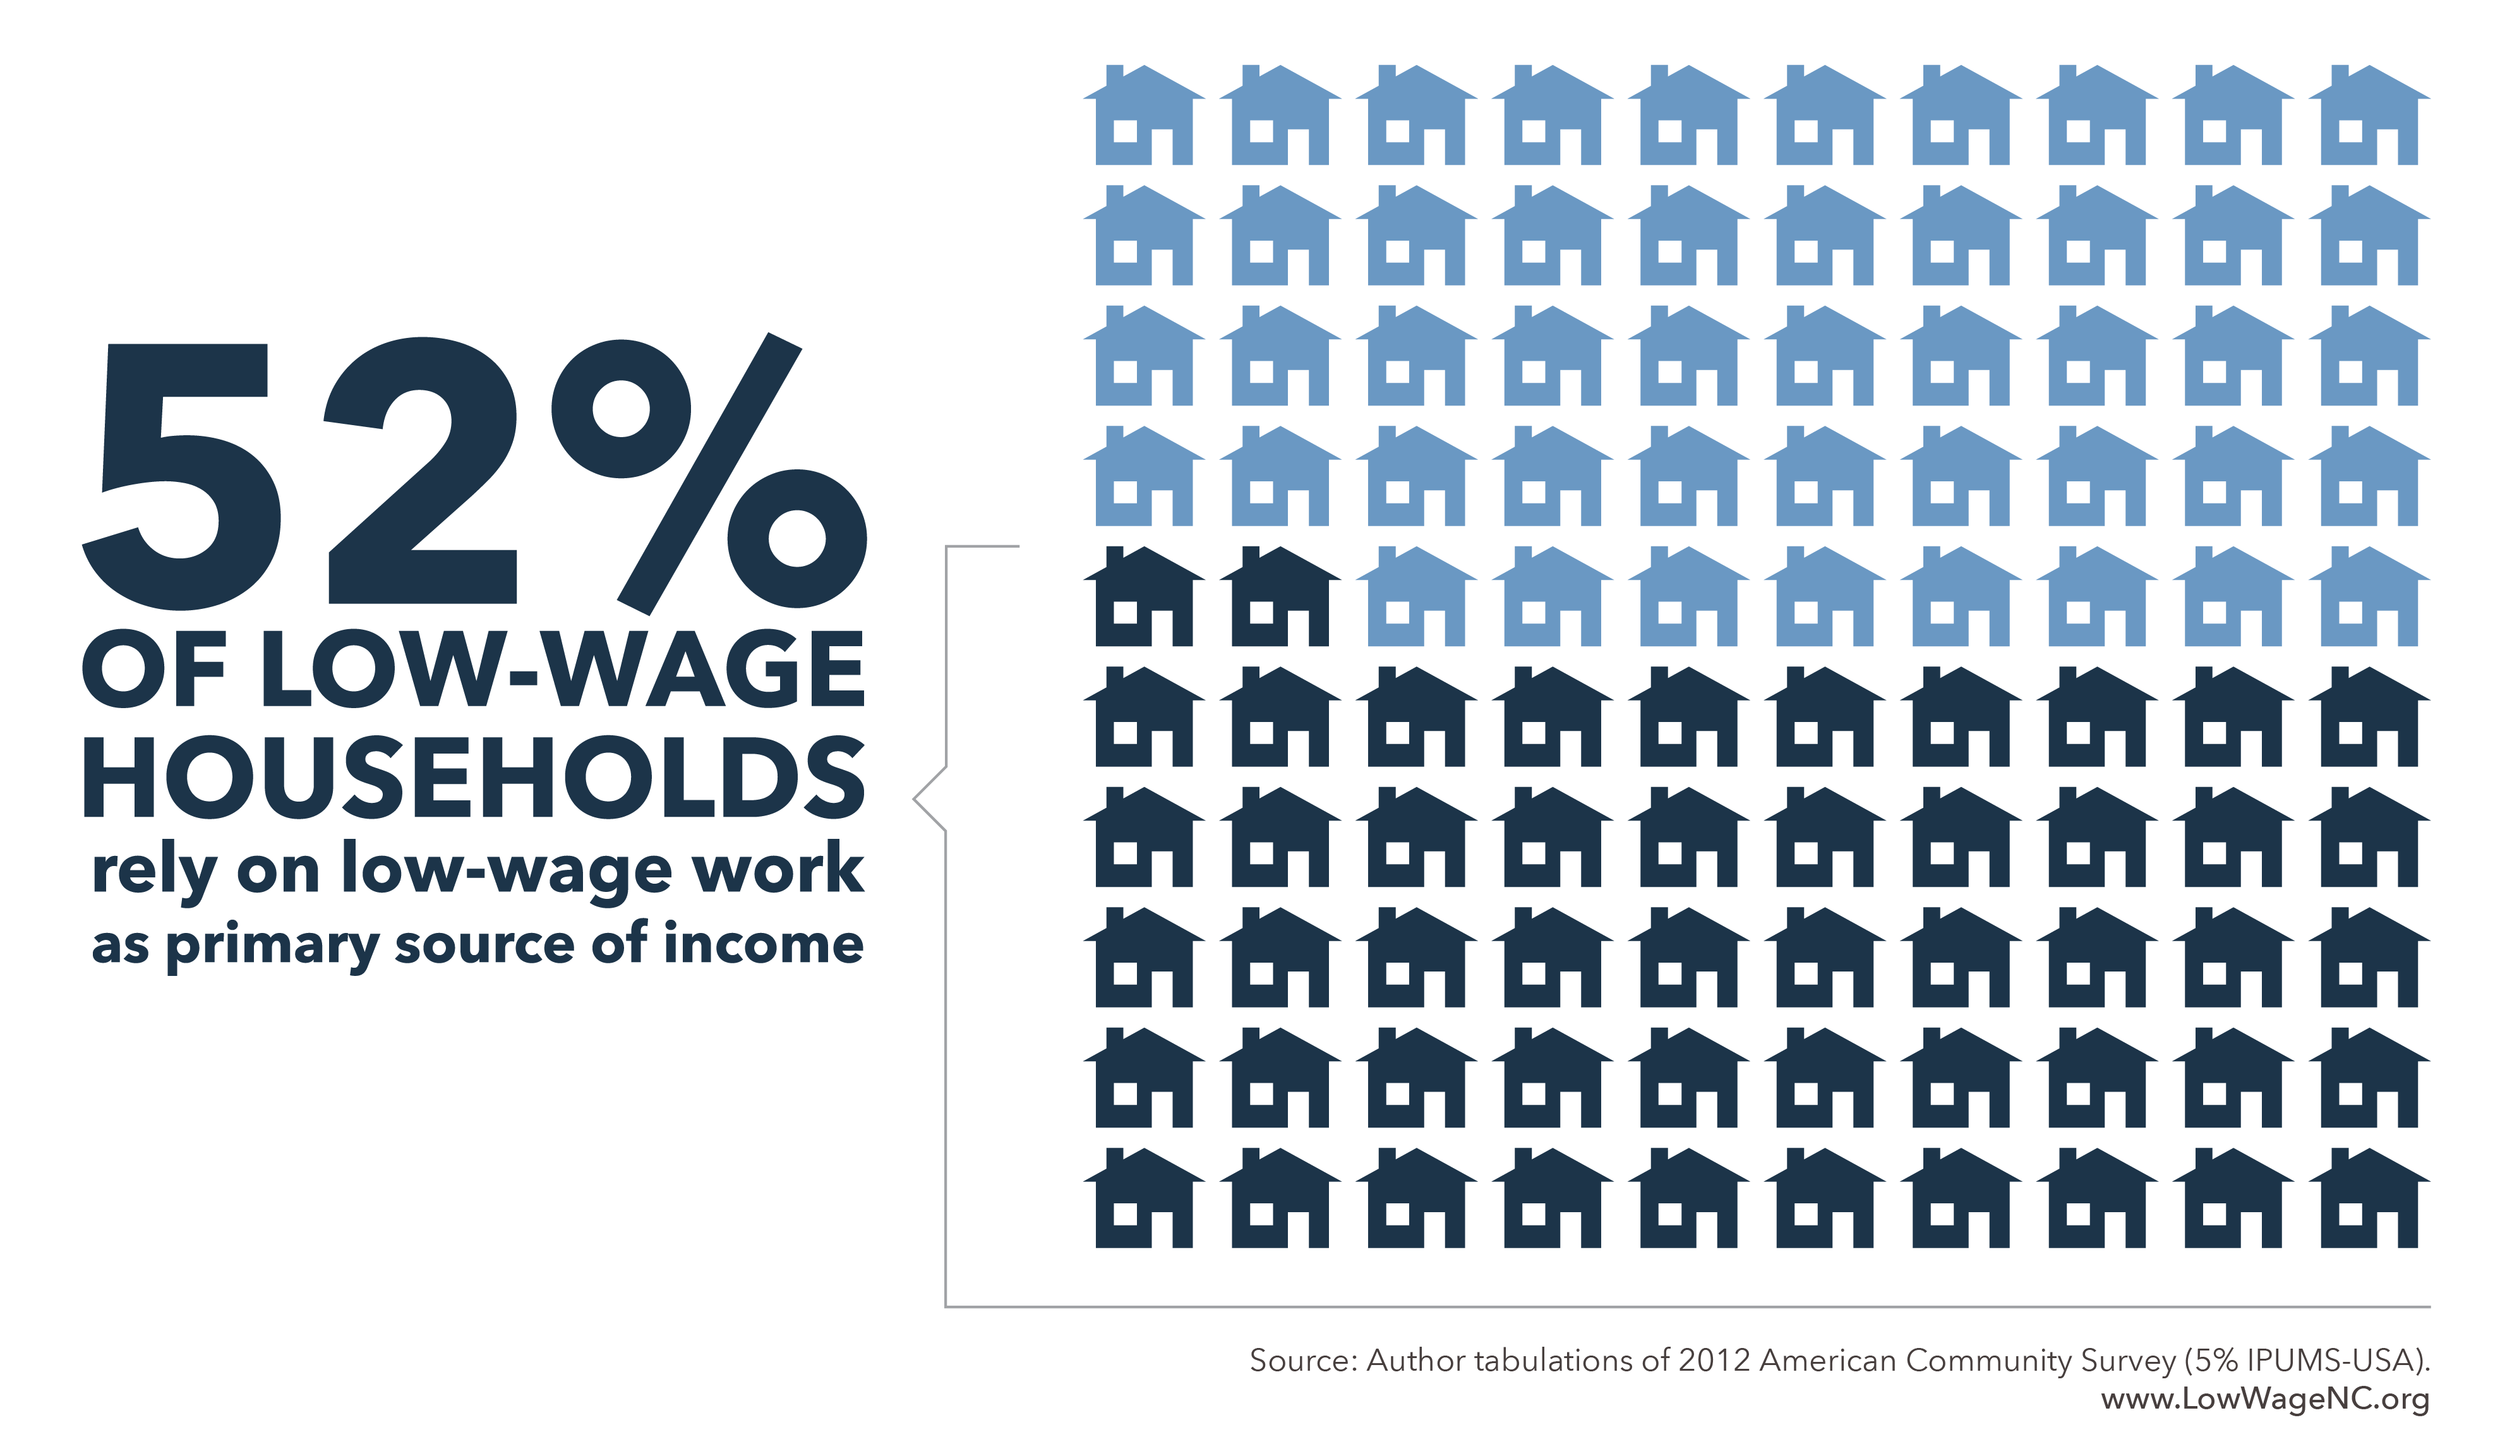 Among households with at least one low-wage worker, 52% rely on low-wage work as their primary source of earnings. This means that a majority of households with a low-wage worker count on income from low-wage work for more than 50% of their income.